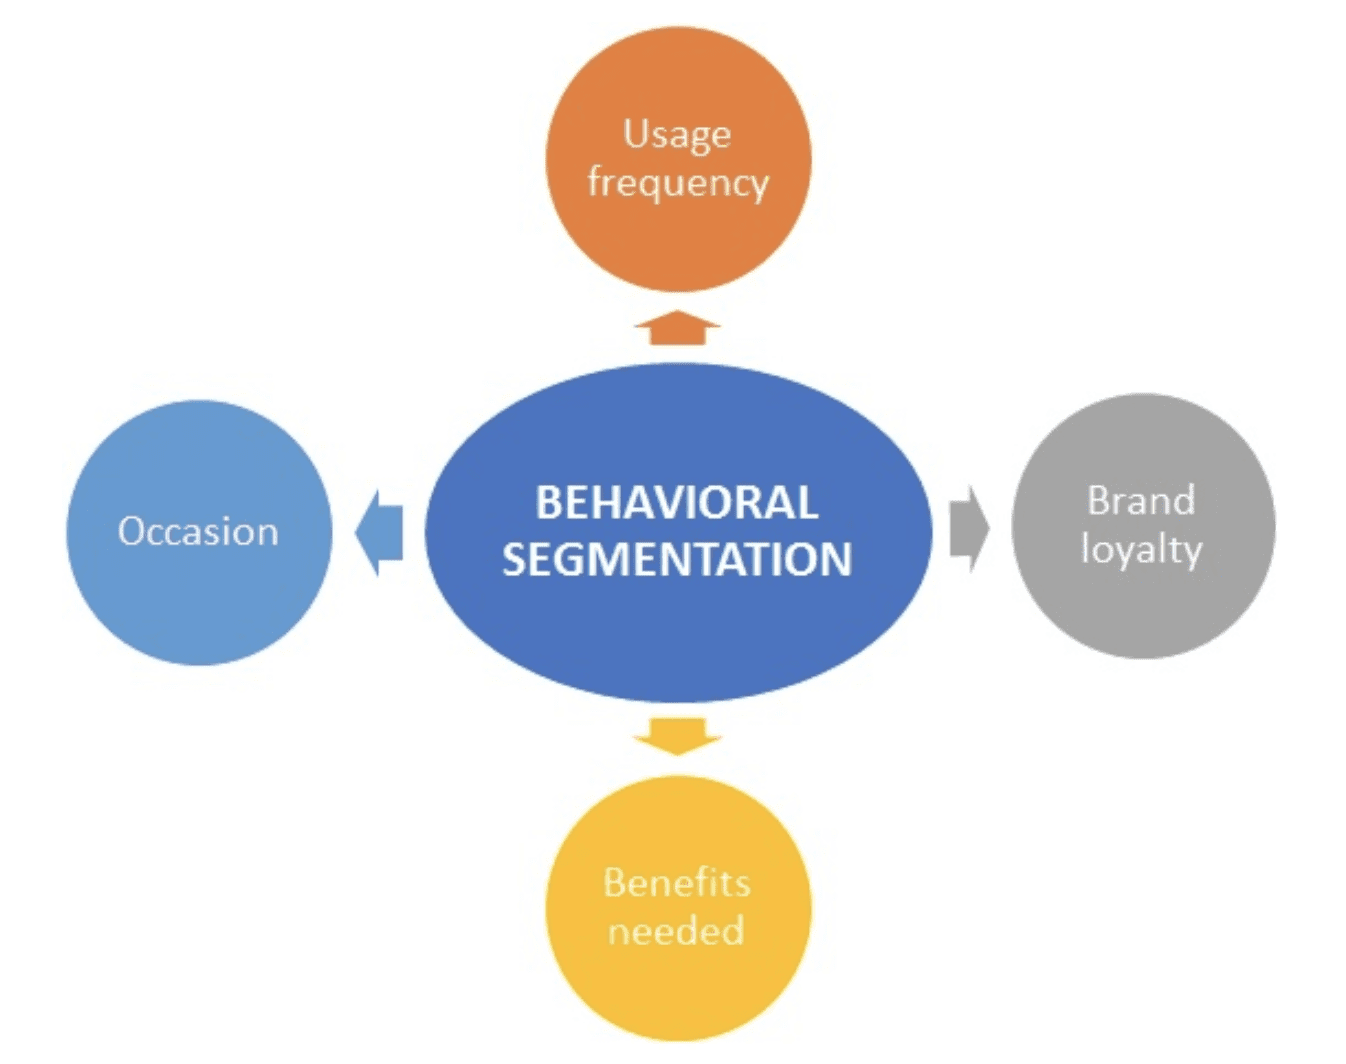 A graph showing behavioral segmentation and why it assists in marketing ideas such as understanding your audience.